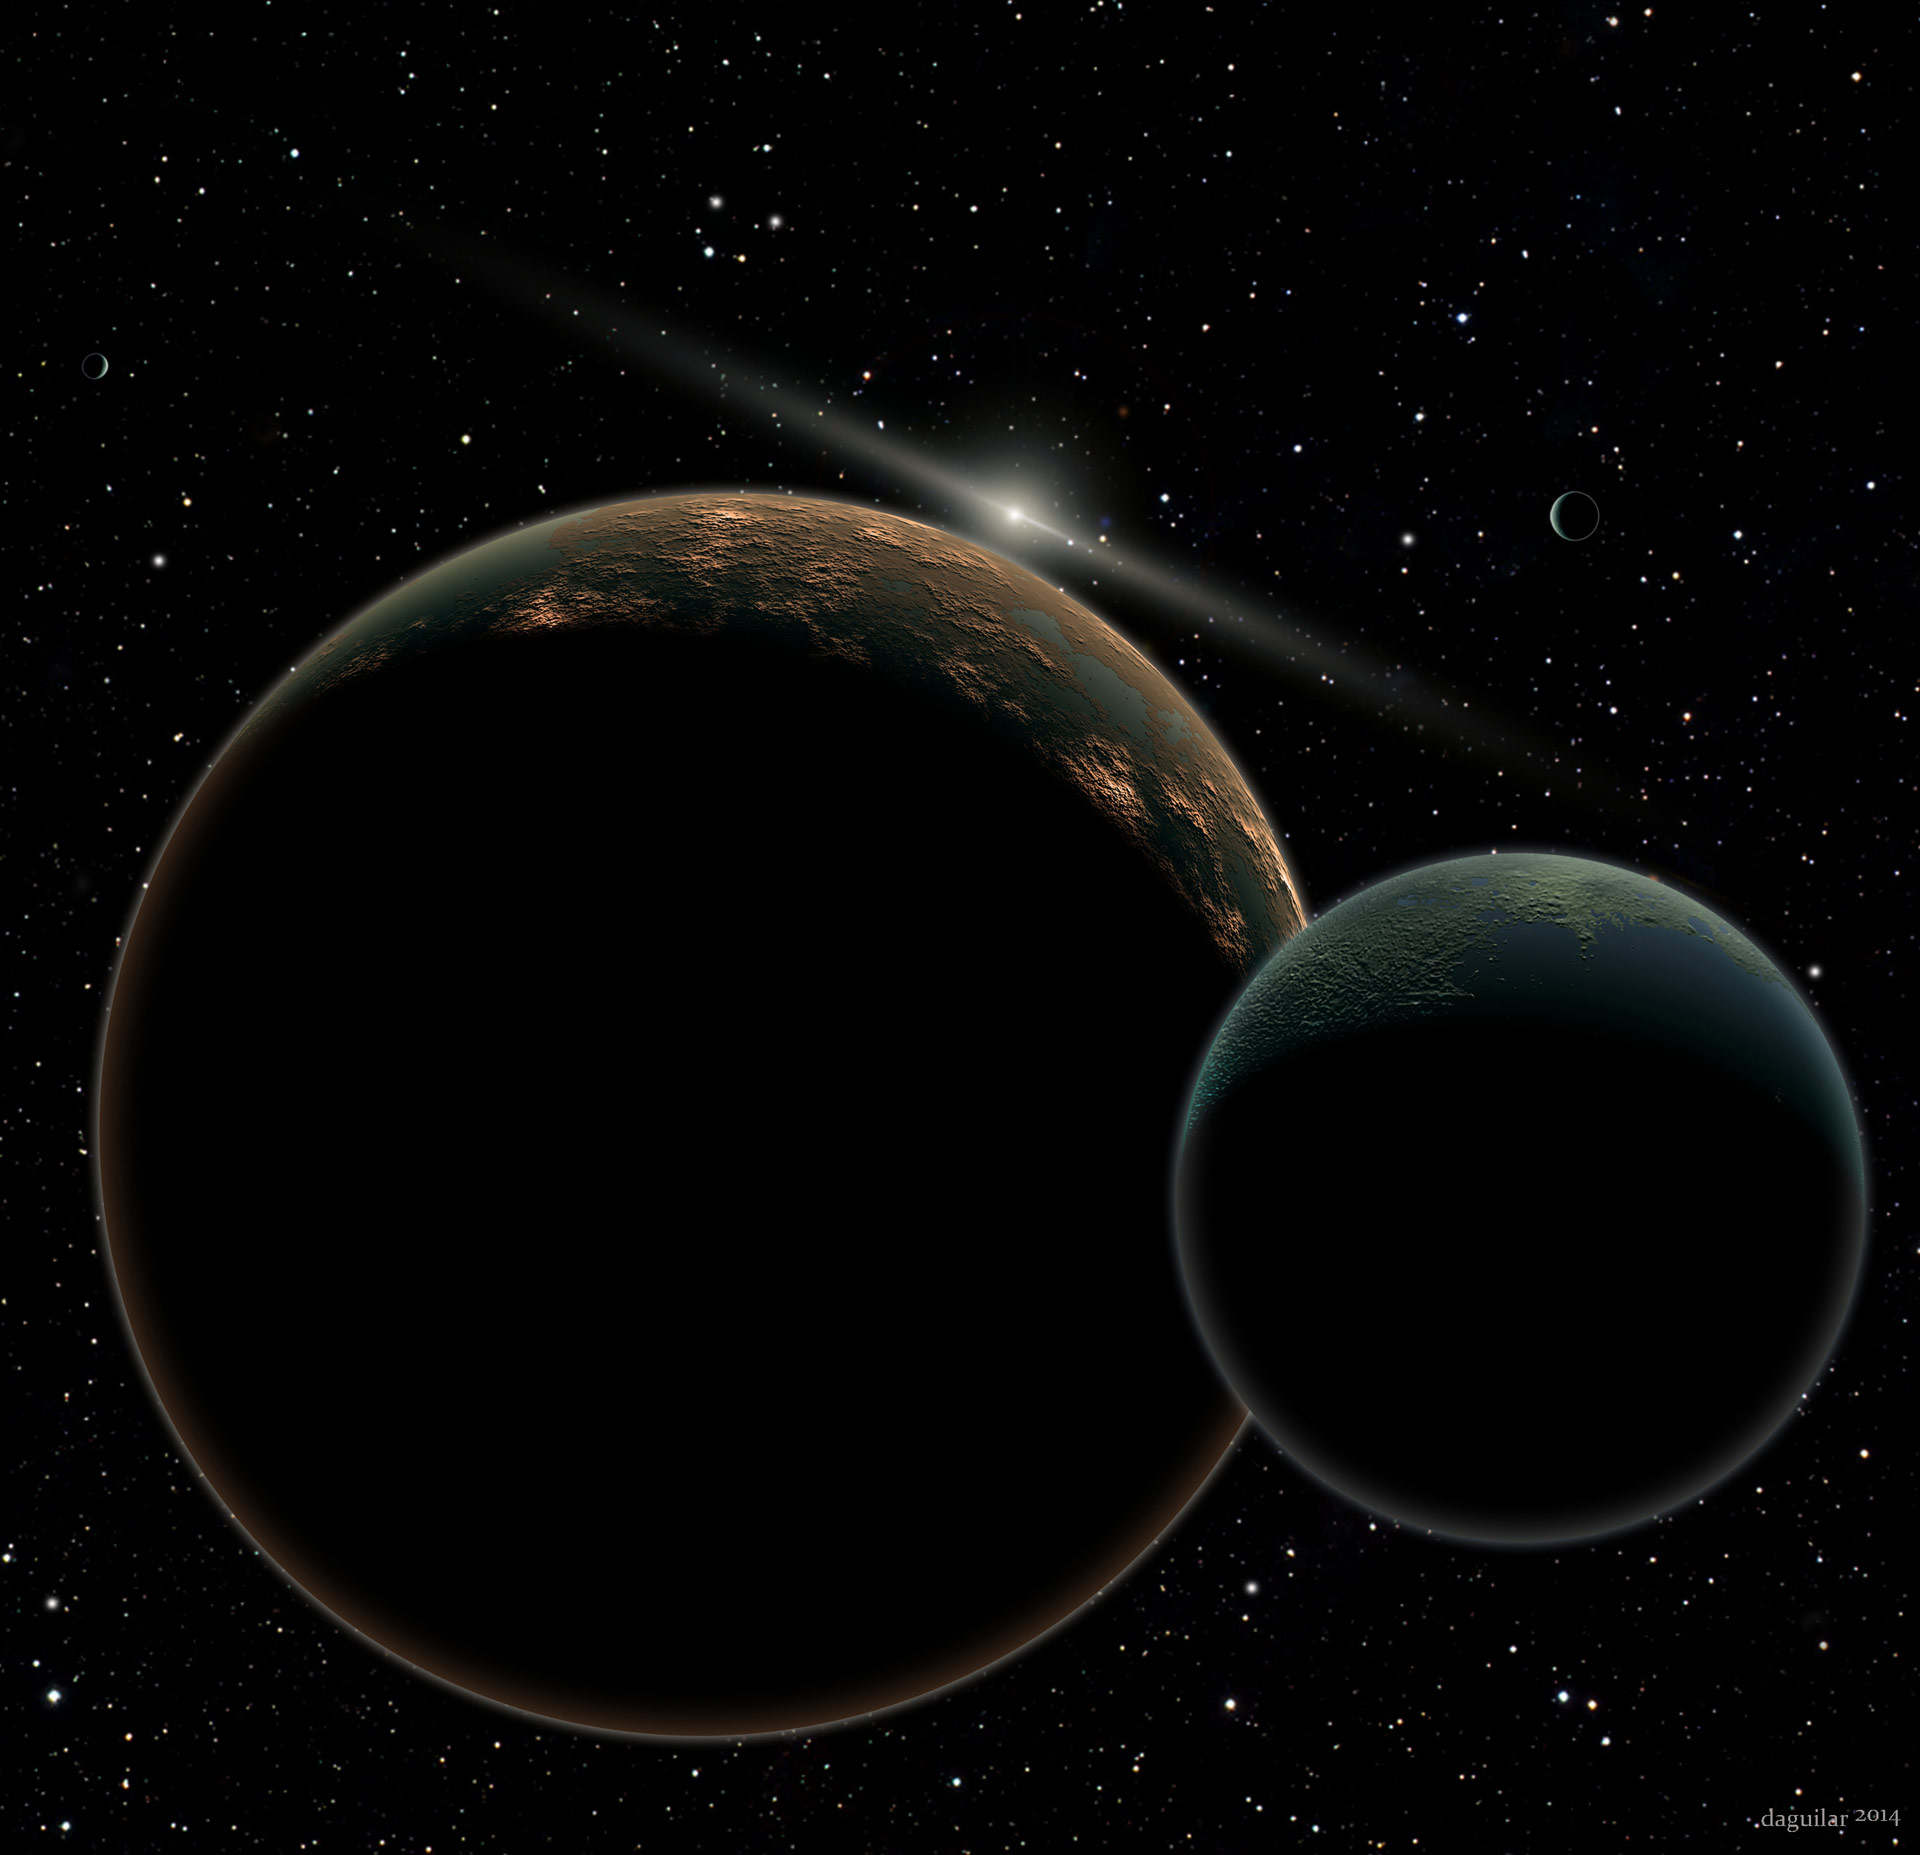 Styx Pluto S Moon: Planetary Scientists Debate: Is Pluto A Planet?